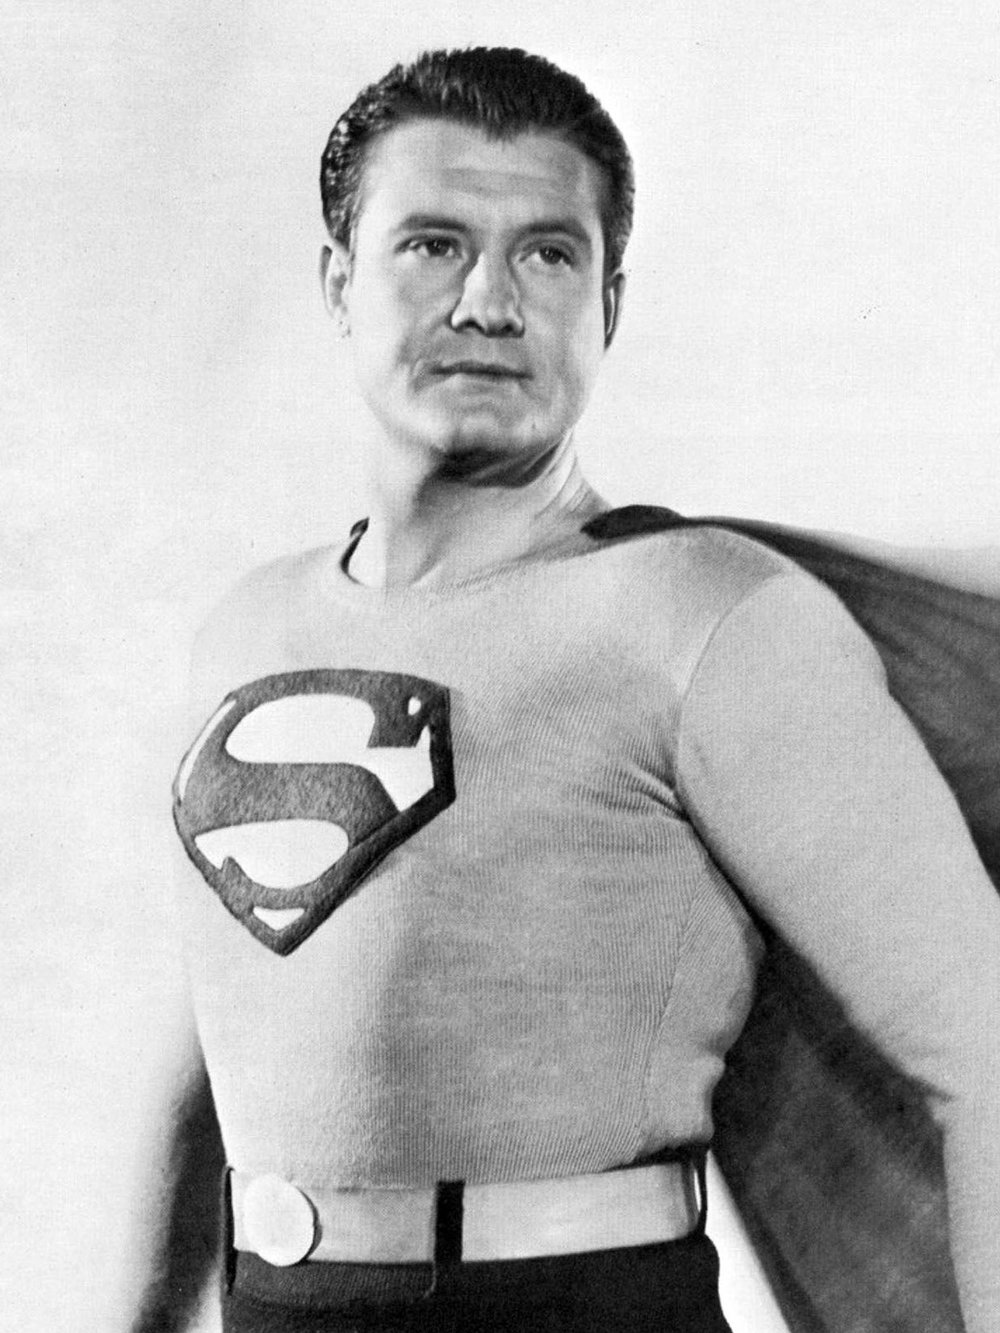 022 - The Suspicious Death of George Reeves - George Reeves exploded into the American mainstream when he donned the red cape and blue tights playing Superman on the 1950's television series The Adventures of Superman. Almost instantly he became synonymous with the superhero as well as his alter ego, mild mannered Clark Kent. Off the screen, Reeve's life was much more complicated and hardly mild mannered. George had been engaged in a nearly ten year romance with Toni Mannix, wife of MGM executive Eddie Mannix known all around Hollywood was the kind of man whose bad side you didn't want to be on.All of that changed in 1958, when Reeves left his older lover for the younger Leonore Lemmon, a New York socialite known for her fiery temper and enchanting looks. Their relationship was a tumultuous one, with Lemmon described as a heavy drinker with a mean temper and a controlling personality.  On the night of June 15th, 1959, George and Lemmon returned home late and went to bed. Several late night visitors came knocking around 1am, and an annoyed George expressed his disinterest in their company. He shared a nightcap with the group before going back upstairs to get some sleep. Moments later, a gunshot rang out and the Superman actor lay dead in his bed of an apparent self-inflicted gunshot wound. For the LAPD, it was an open and shut case of suicide, but the evidence would suggest a much more sinister event had taken place.Listen Now | YouTube Video